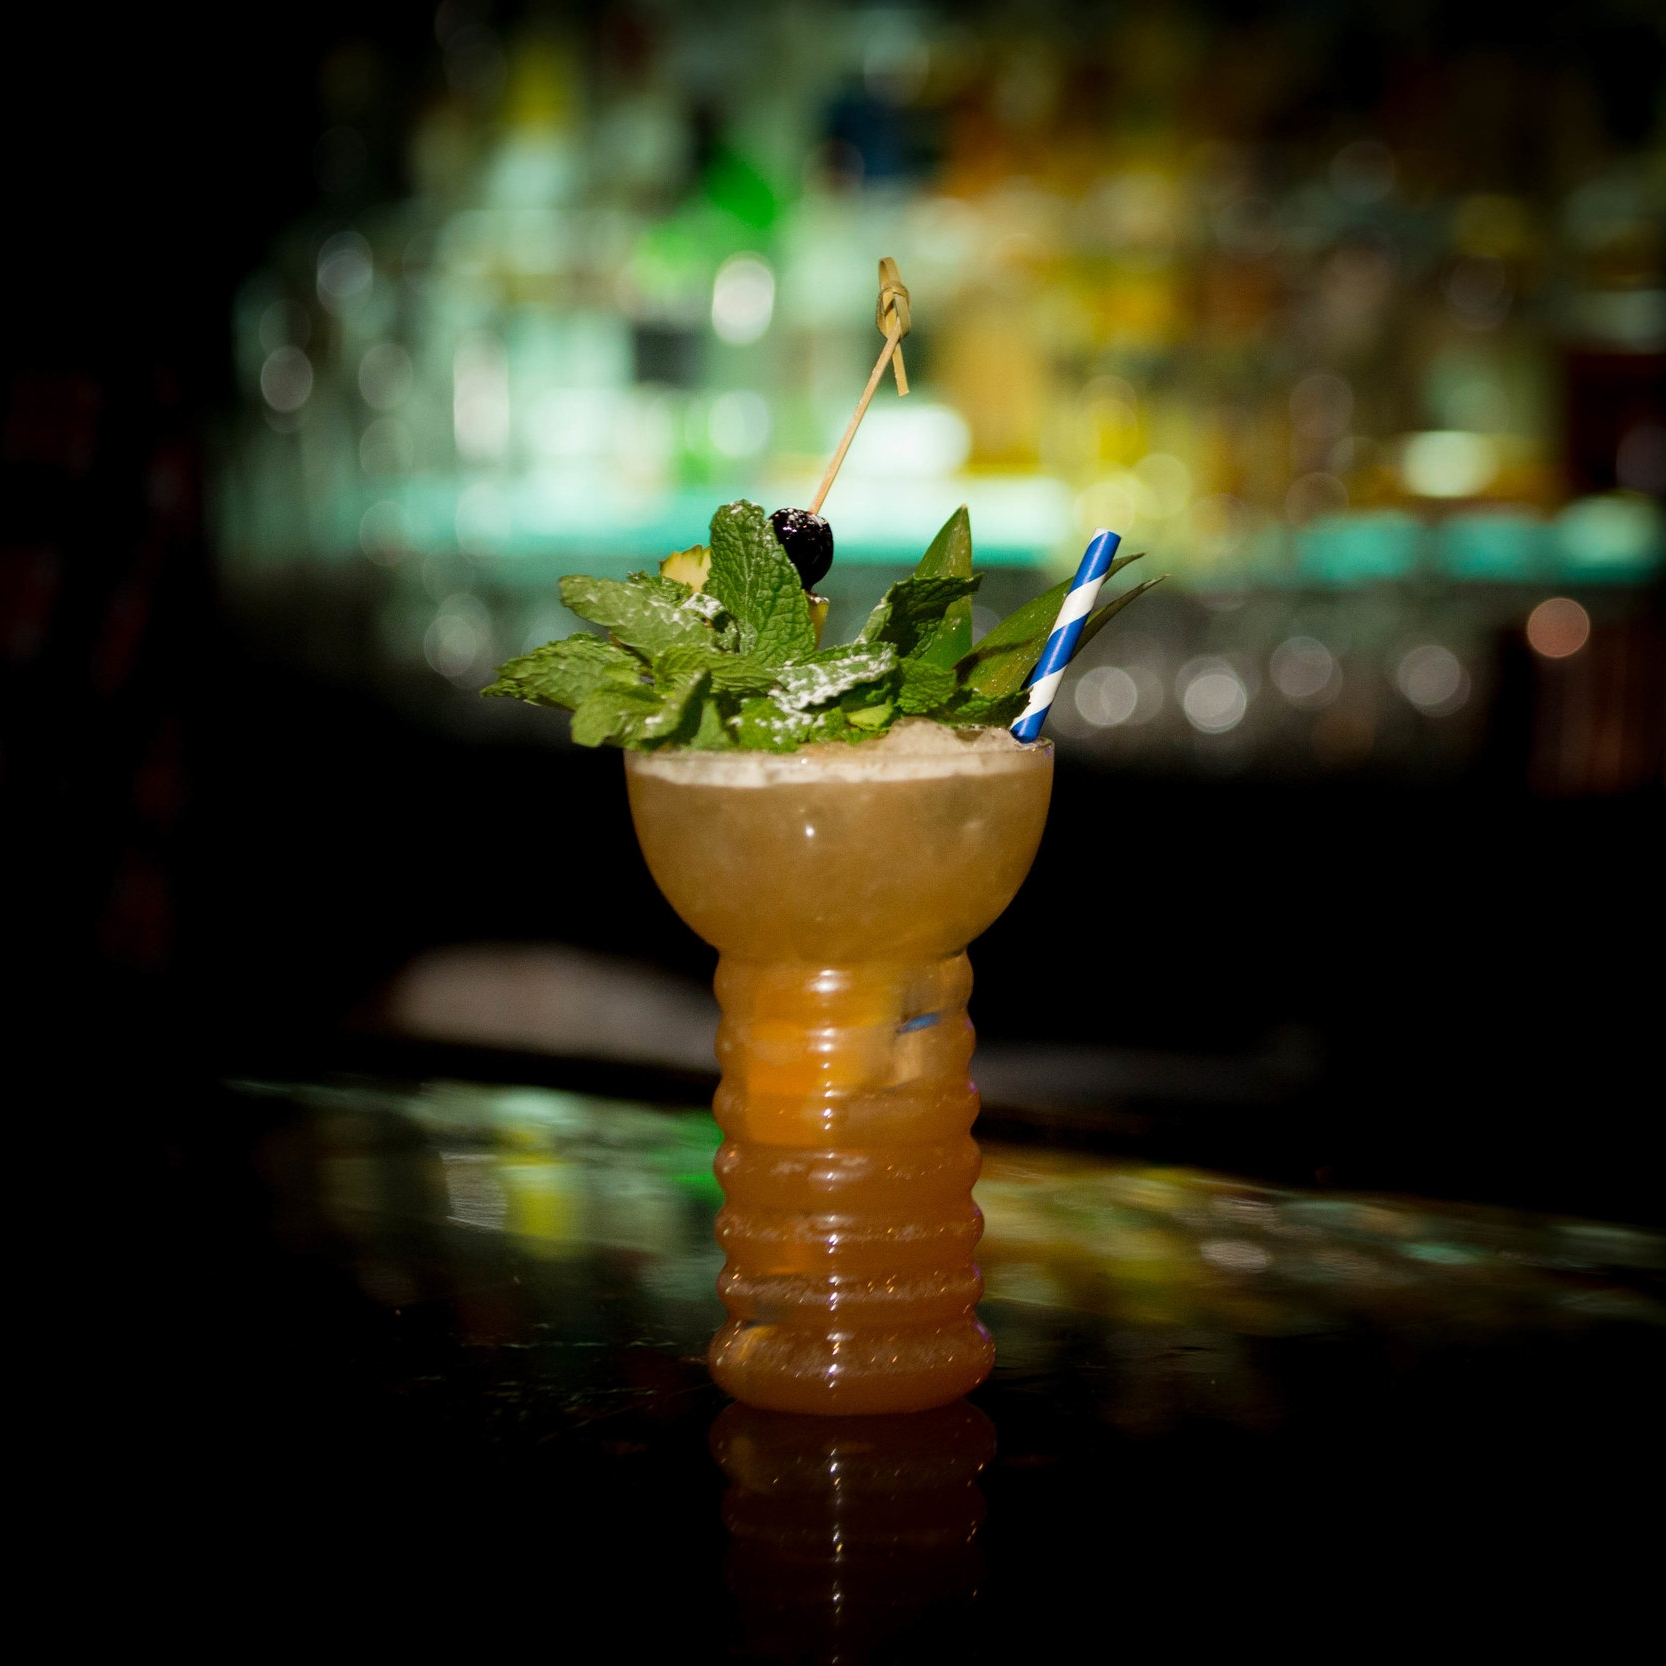 OSCEOLA PUNCH   • 1 oz. Hamilton Black • 1 oz. Flor de Cana 7 year • .5 oz. Goslings 151 • 1.5 oz. yaupon tea • 1 oz. lemon juice • .75 oz. honey • .25 oz. Falernum • 3 dashes Herbsaint • 3 dashes Angostura Bitters  • 1. Add all ingredients to drink mixer tin and blend for 5 seconds. • 2. Open pour into a pearl diver glass. • 3. Garnish with a cherry skewered through a pineapple chunk and a mint sprig.